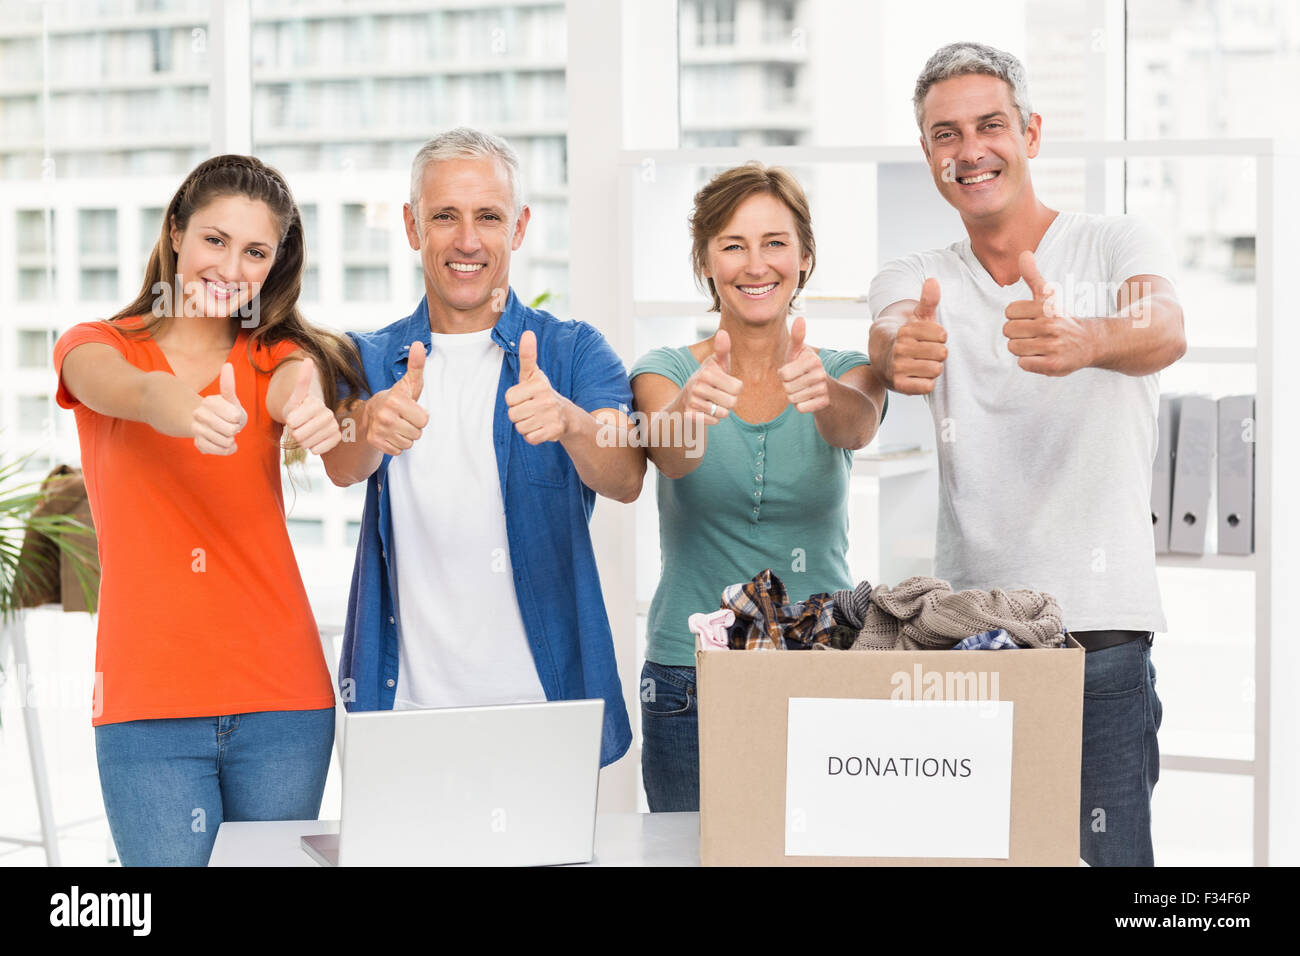 Casual business people donating and doing thumbs up - Stock Image